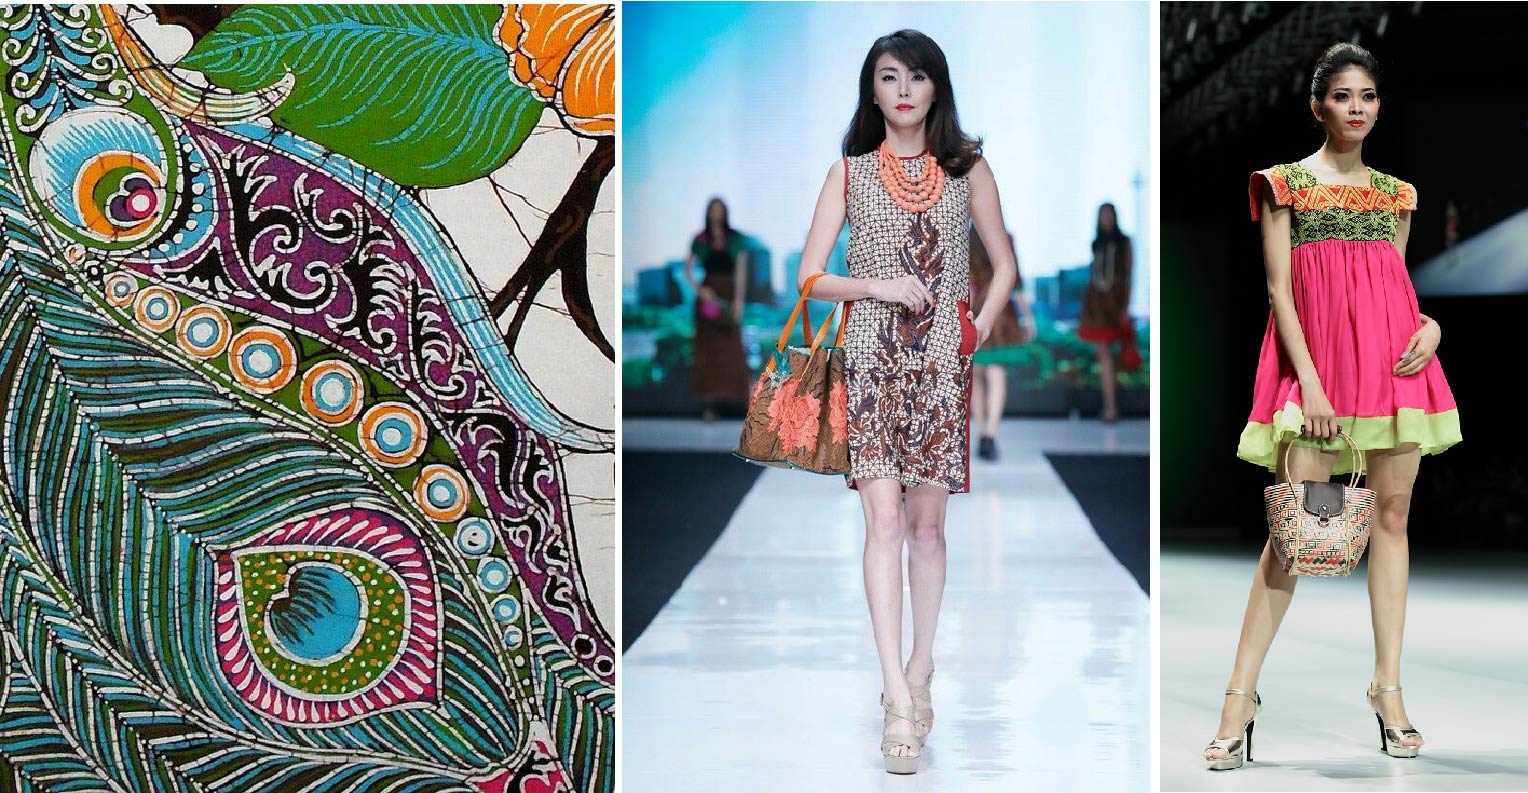 "If you hear the word ""Batik"", what's going on your mind? Oldschool? Boring? Traditional? Javanese?Indonesia? Or Fashion trends?  Alright, before we talk about ""Batik"" Bag Fashion Trends, let's explore the evolution of Batik in Indonesia.  image via   Batik is Indonesian's traditional fabric which is also Indonesia's authentic heritage. Batik has also acknowledged by UNESCO as Representative List of the Intangible Cultural Heritage of Humanity in 2009.  In the past, there were many rules regulating the use of Batik. At that time, Batik's pattern shows one's social status. Moreover, there are some kind of Batik worn only by aristocrats and royal family (Read : Keraton)   Looking back at 5-6 years ago, people still underestimated Batik as oldschool fabric which only used for traditional and formal events like wedding or some state events.   image via  Many of us still consider Batik as old people's clothing. Many also regard Batik as a boring clothing with motonous colours: fusion of black,white, brown and other dark colours. Isnt it?  The same here with me. I regarded Batik as a boring and oldschool clothing. I didnt want to wear it because if I did, I would feel like an elder. Oh no!   But it was in the past. People changes, right? Now, I really want to have an ethnic looks in my appearance by wearing Batik clothes and using Batik accessories.  Why? Because Batik has evolved too. People shouldnt underestimate Batik again since it has followed the recent fashion trends. With creative fusion of patterns, shades and fabrics, Batik has taken many fashionistas' heart. Not only in Indonesia, Batik has already ""gone international"".   And now, which Indonesian fashionistas who fed-up with Batik? Almost everyone from every circle loves batik, to be worn daily and in formal occasions.   image via   There are many Batik creations in the form of bags, shoes, accessories and also the clothing.  ""BATIK"" BAG  FASHION TRENDS If you are also a Batik Lovers, you must be want to update all stuffs about Batik Fashion. One of it is a ""Batik Bag"" which can complete up your appearance to be more beautiful and fashionable.    image via  This Batik Bag is available in many styles such as Clutch, Messenger, BackPack, Hobo, Tote, CrossBody, SaddleBag and many more.   image via  I like each of the Batik Bag above! But the one steals my attention to perfect my ethnic look is the Clutch :) This Clutch can be used daily and in formal occasions, so it saves more money: one bag for all occasions.  Batik Clutch Bag has been in my wishlist since last year. But do you know where to find Batik Bag with many styles, just like in the pics I posted above?   image via  Yes, all of the Batik Bags with many styles can be found in Zalora Indonesia guys :) . No need to have a tiring queue or traffic jam. You can access it online with your smartphone. Just sit comfortably and have some snacks (this is really me), go browsing the products, add to chart, pay the bill and wait until your order arrive in 1 - 2 workdays.  And also, as an additional info: you can get 15% discount using this code: ZLAPP15 for every minimum purchase of IDR 375.000 through Zalora application which is available in the App Store. Now, what do you waiting for? Quickly update your Fashion Looks by shopping in Zalora, the number one Fashion Online Website in Indonesia :) .  Until next post :)    Instagram - Twitter - Facebook - Pinterest"